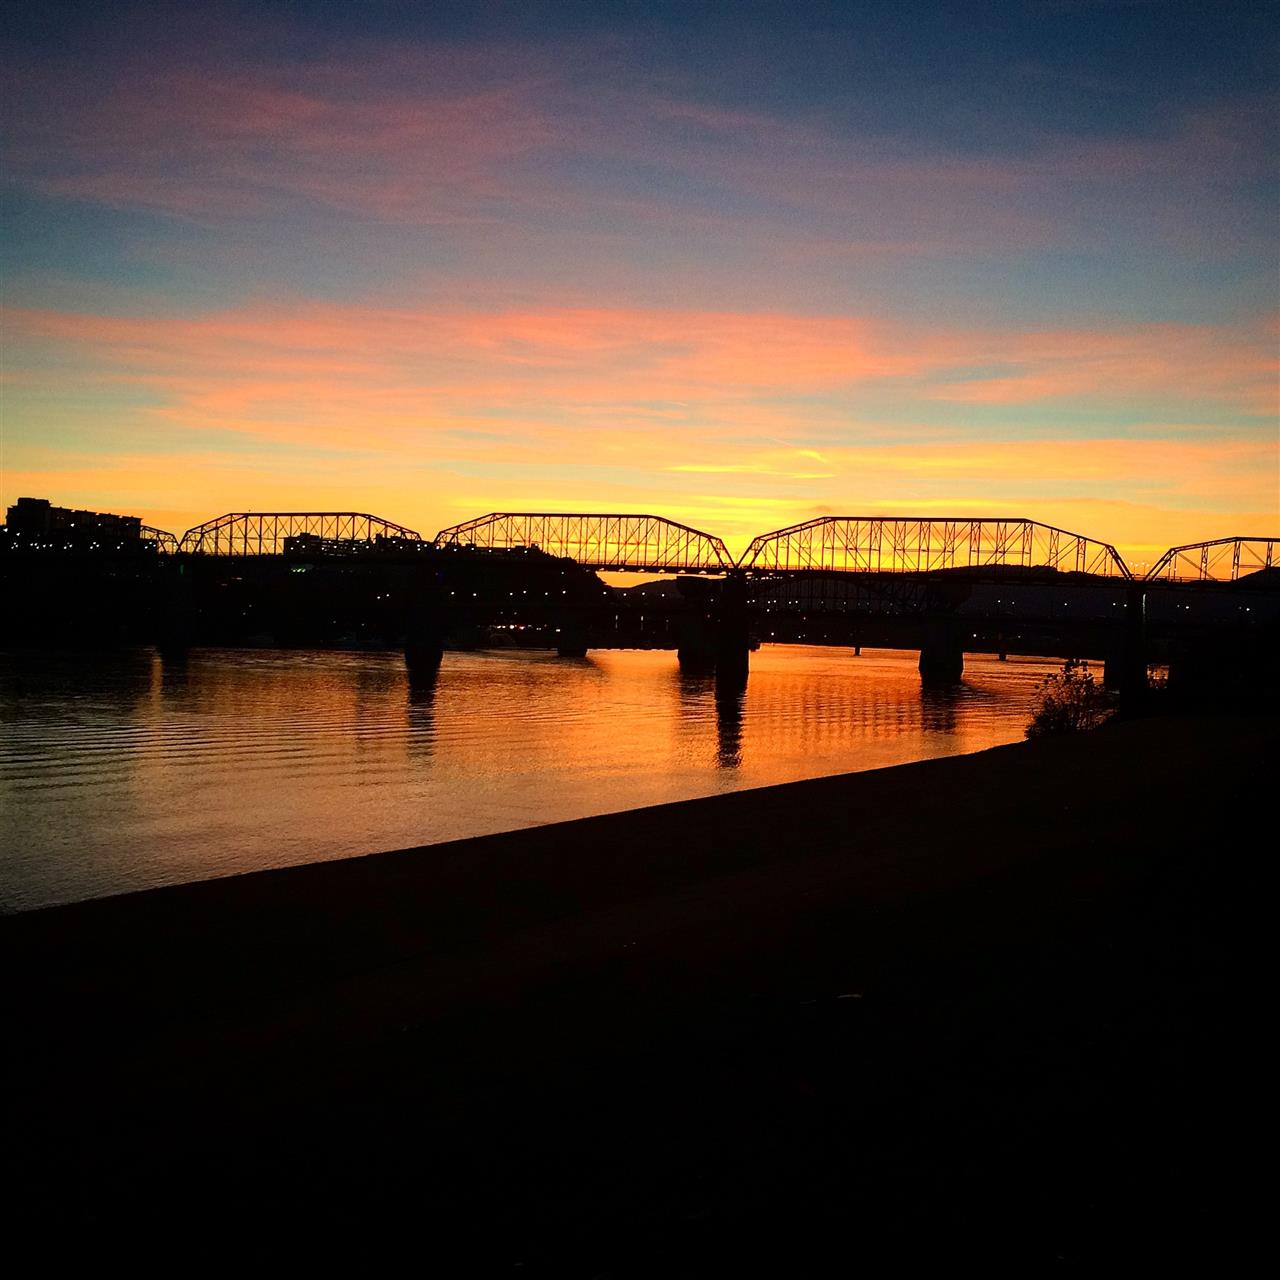 Walnut Street Bridge in Chattanooga, TN